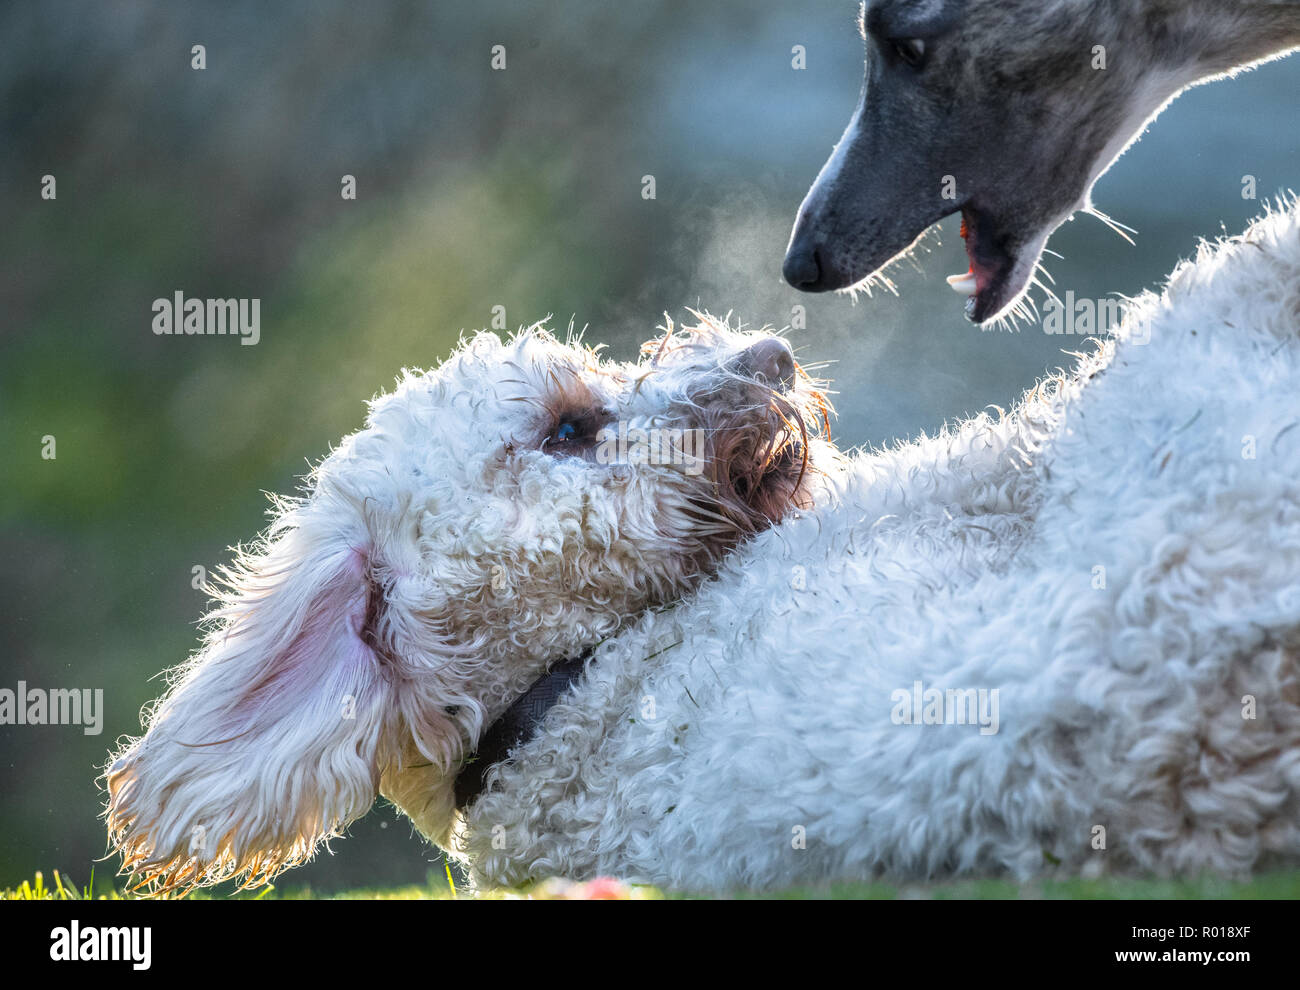 Young Cockapoo dog - Stock Image